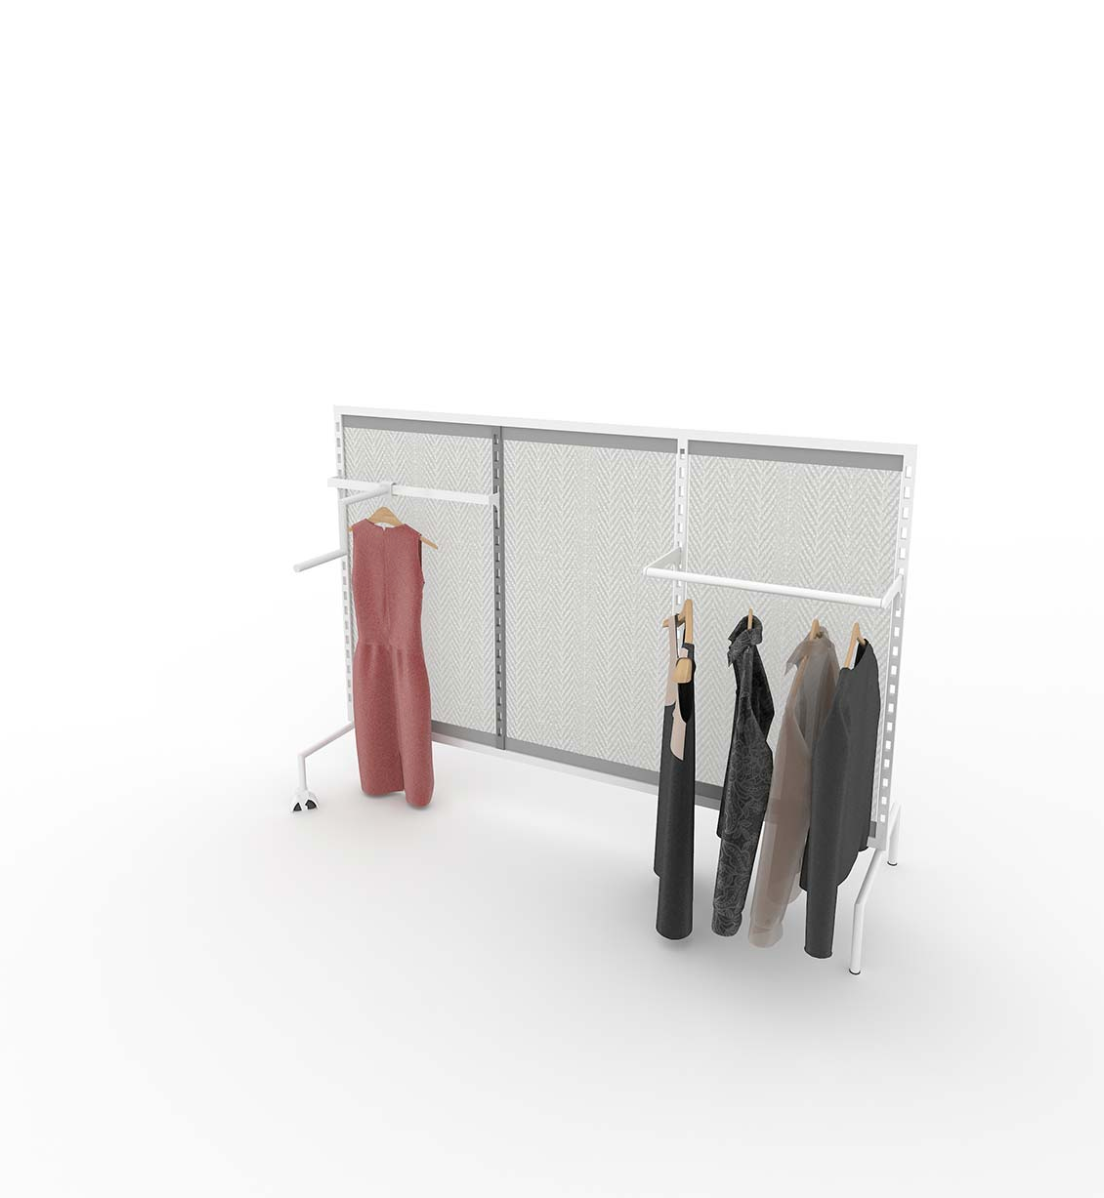 Lady's Clothing Display